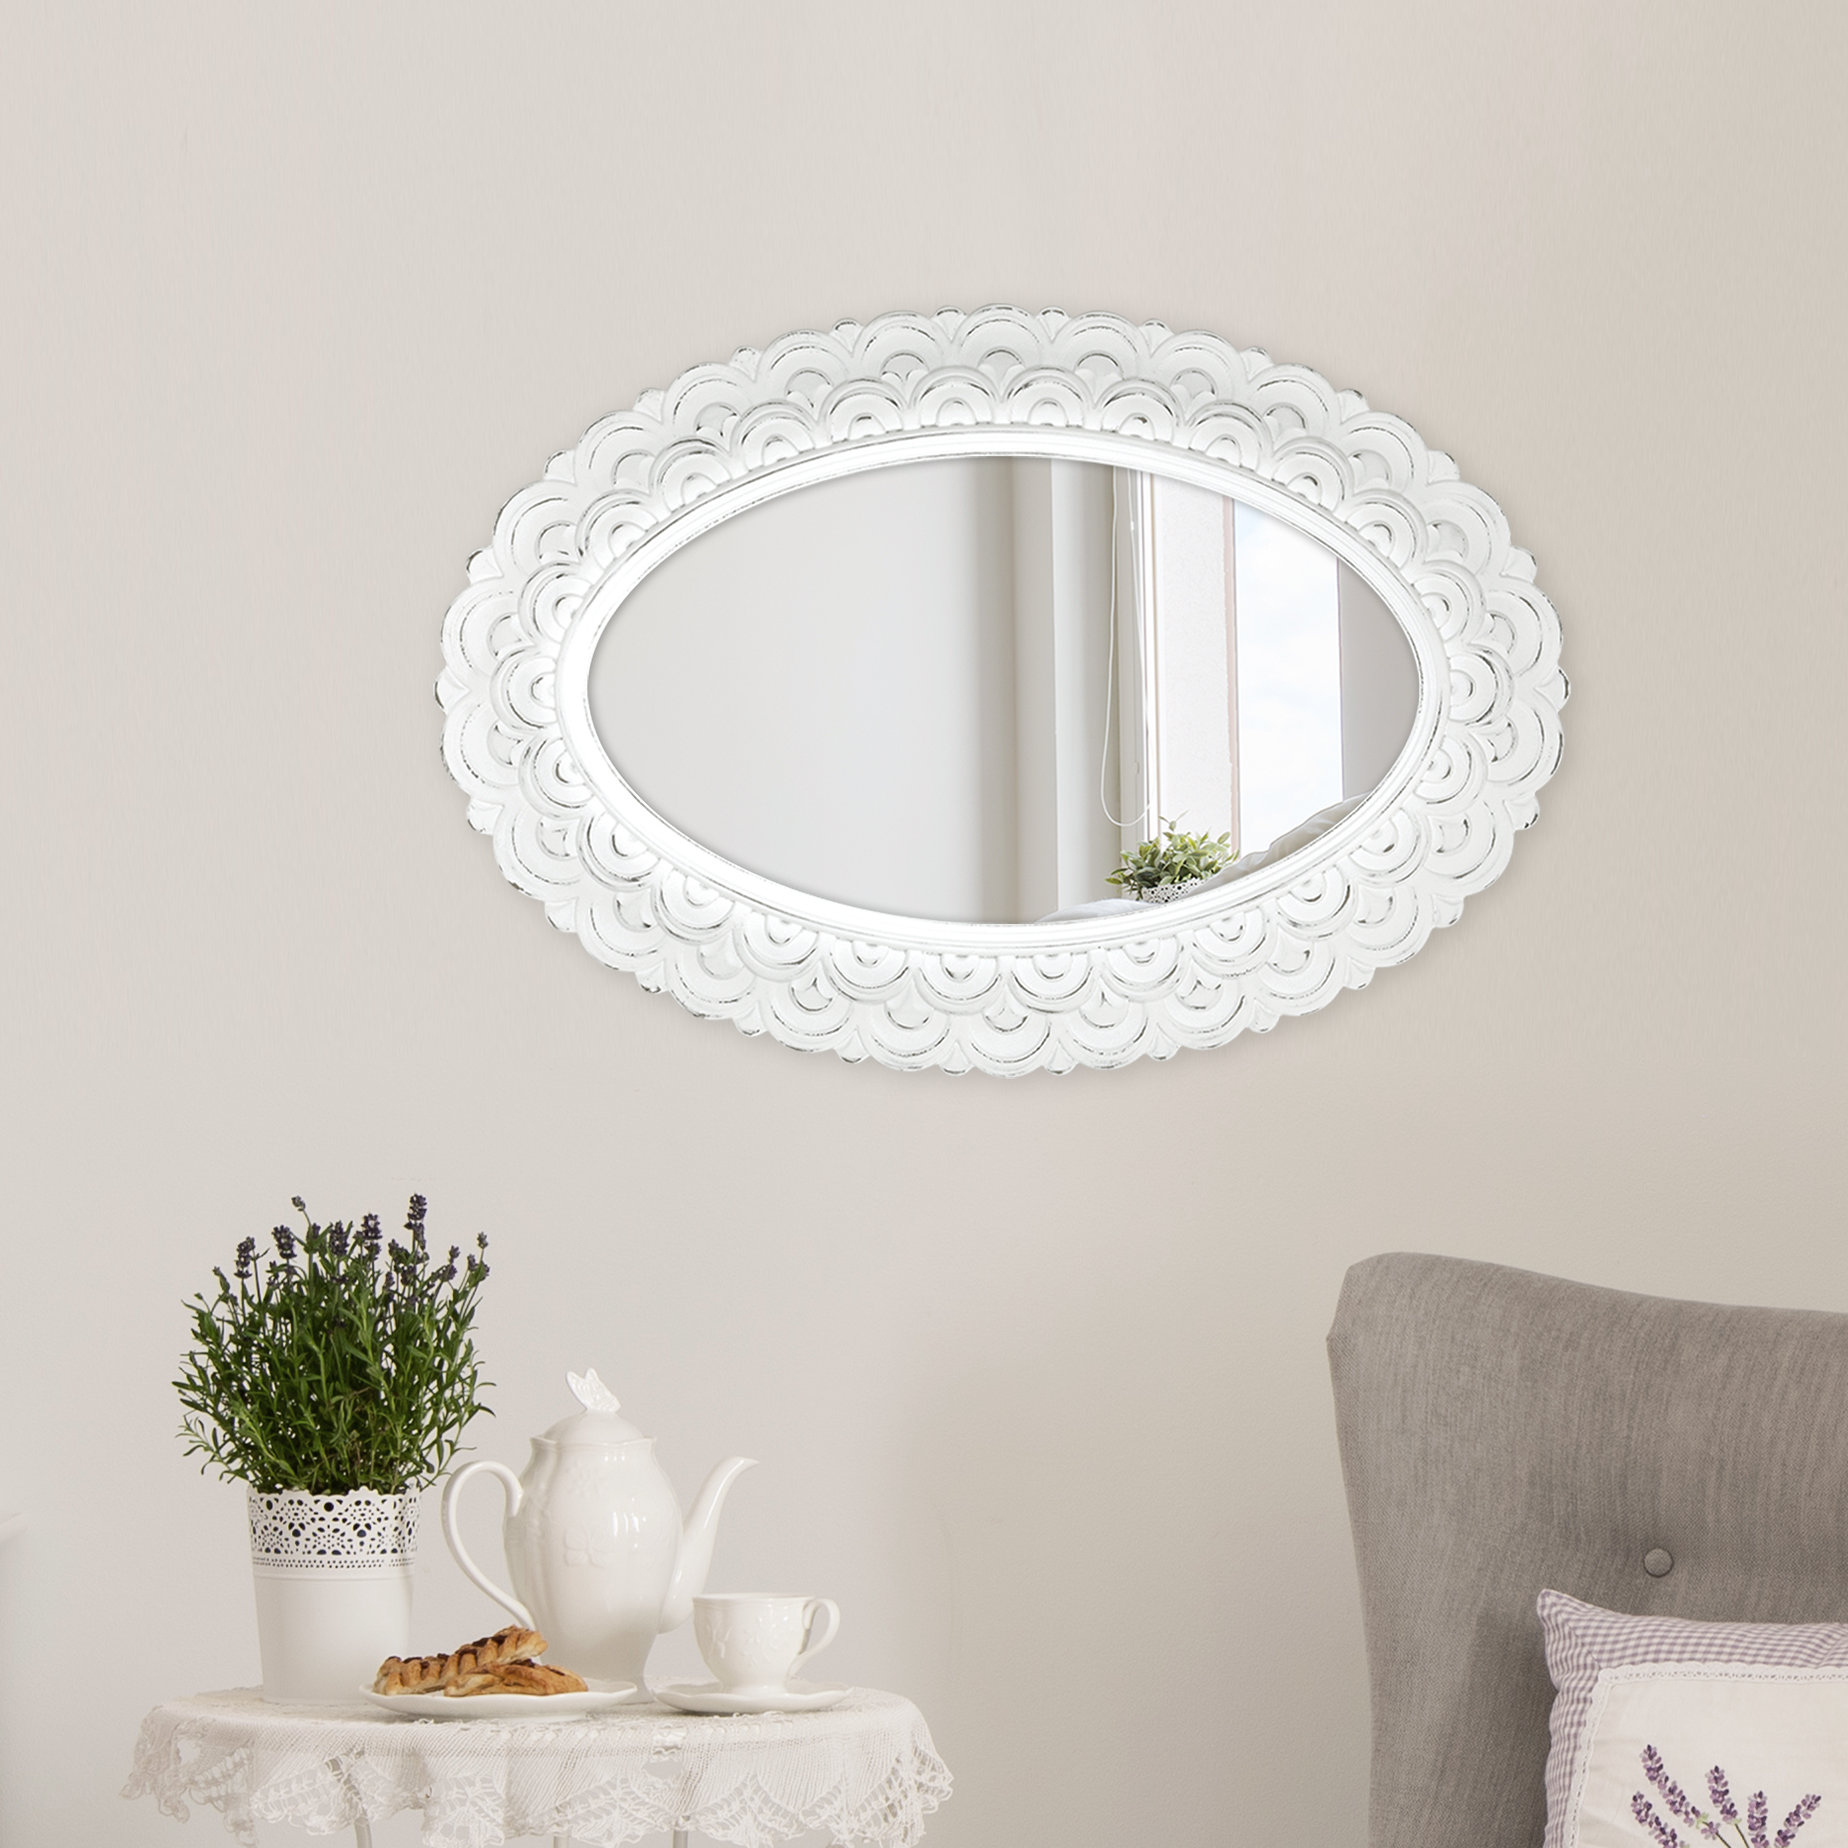 Most Recent Carballo Oval Wall Accent Mirror For Point Reyes Molten Round Wall Mirrors (View 13 of 20)